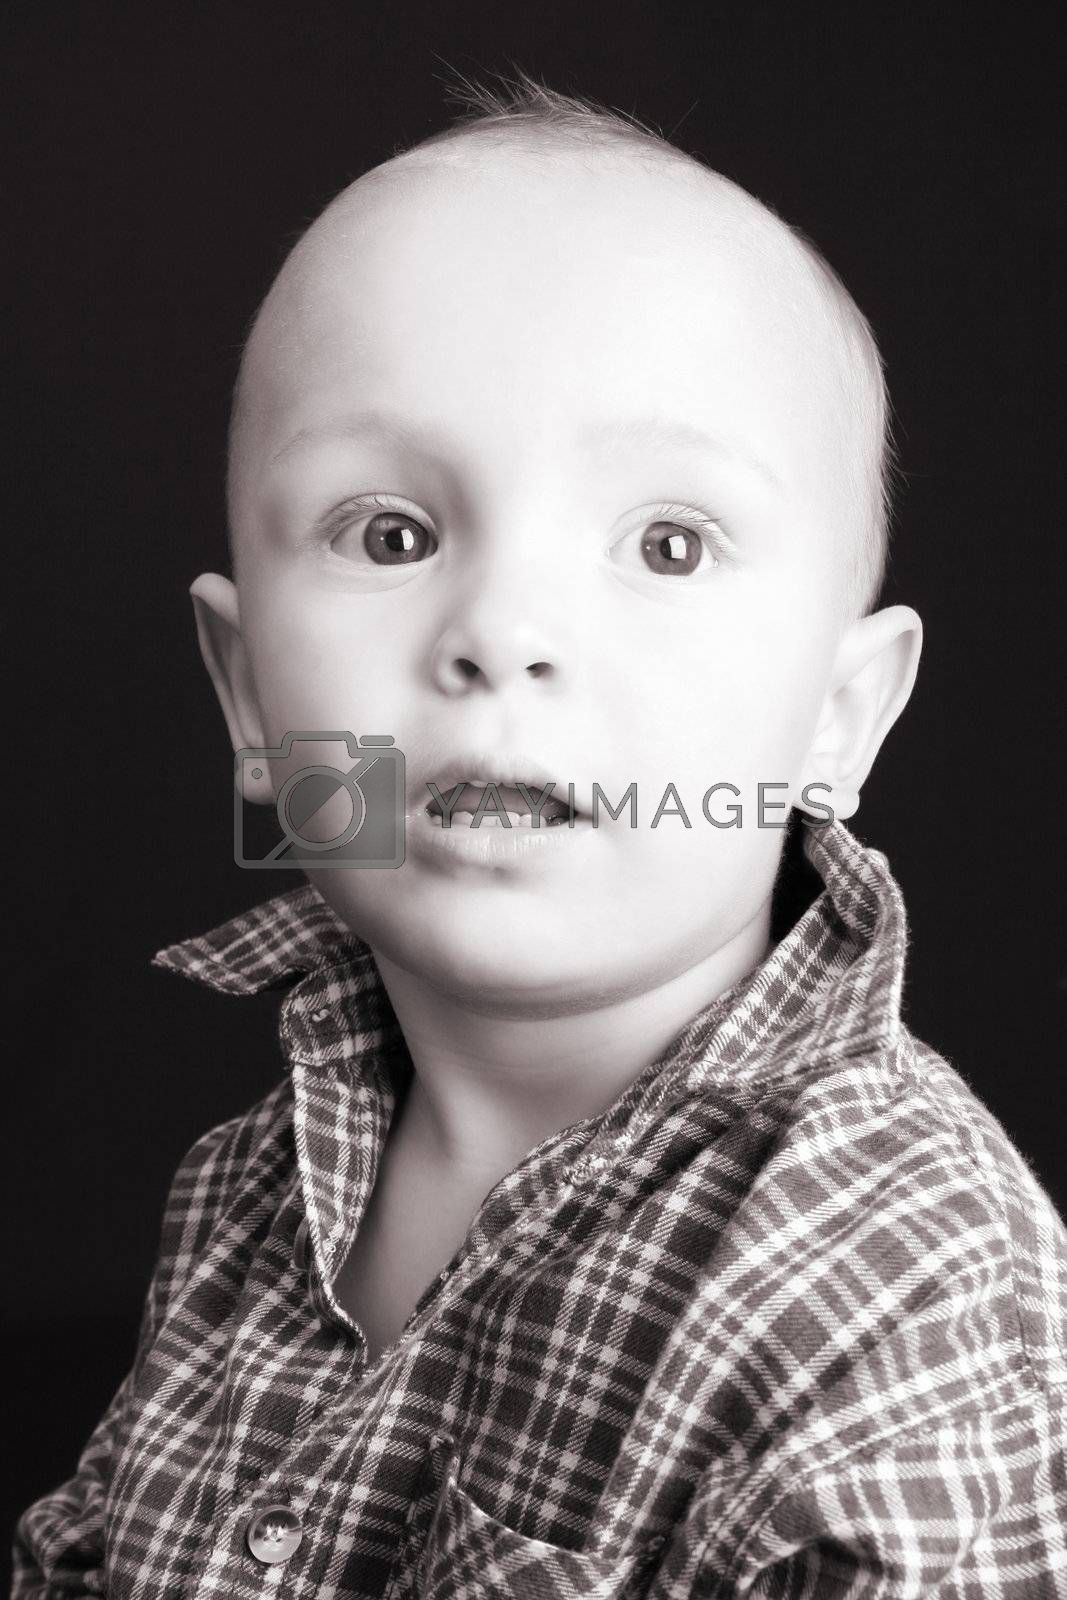 Serious blond toddler against a black background